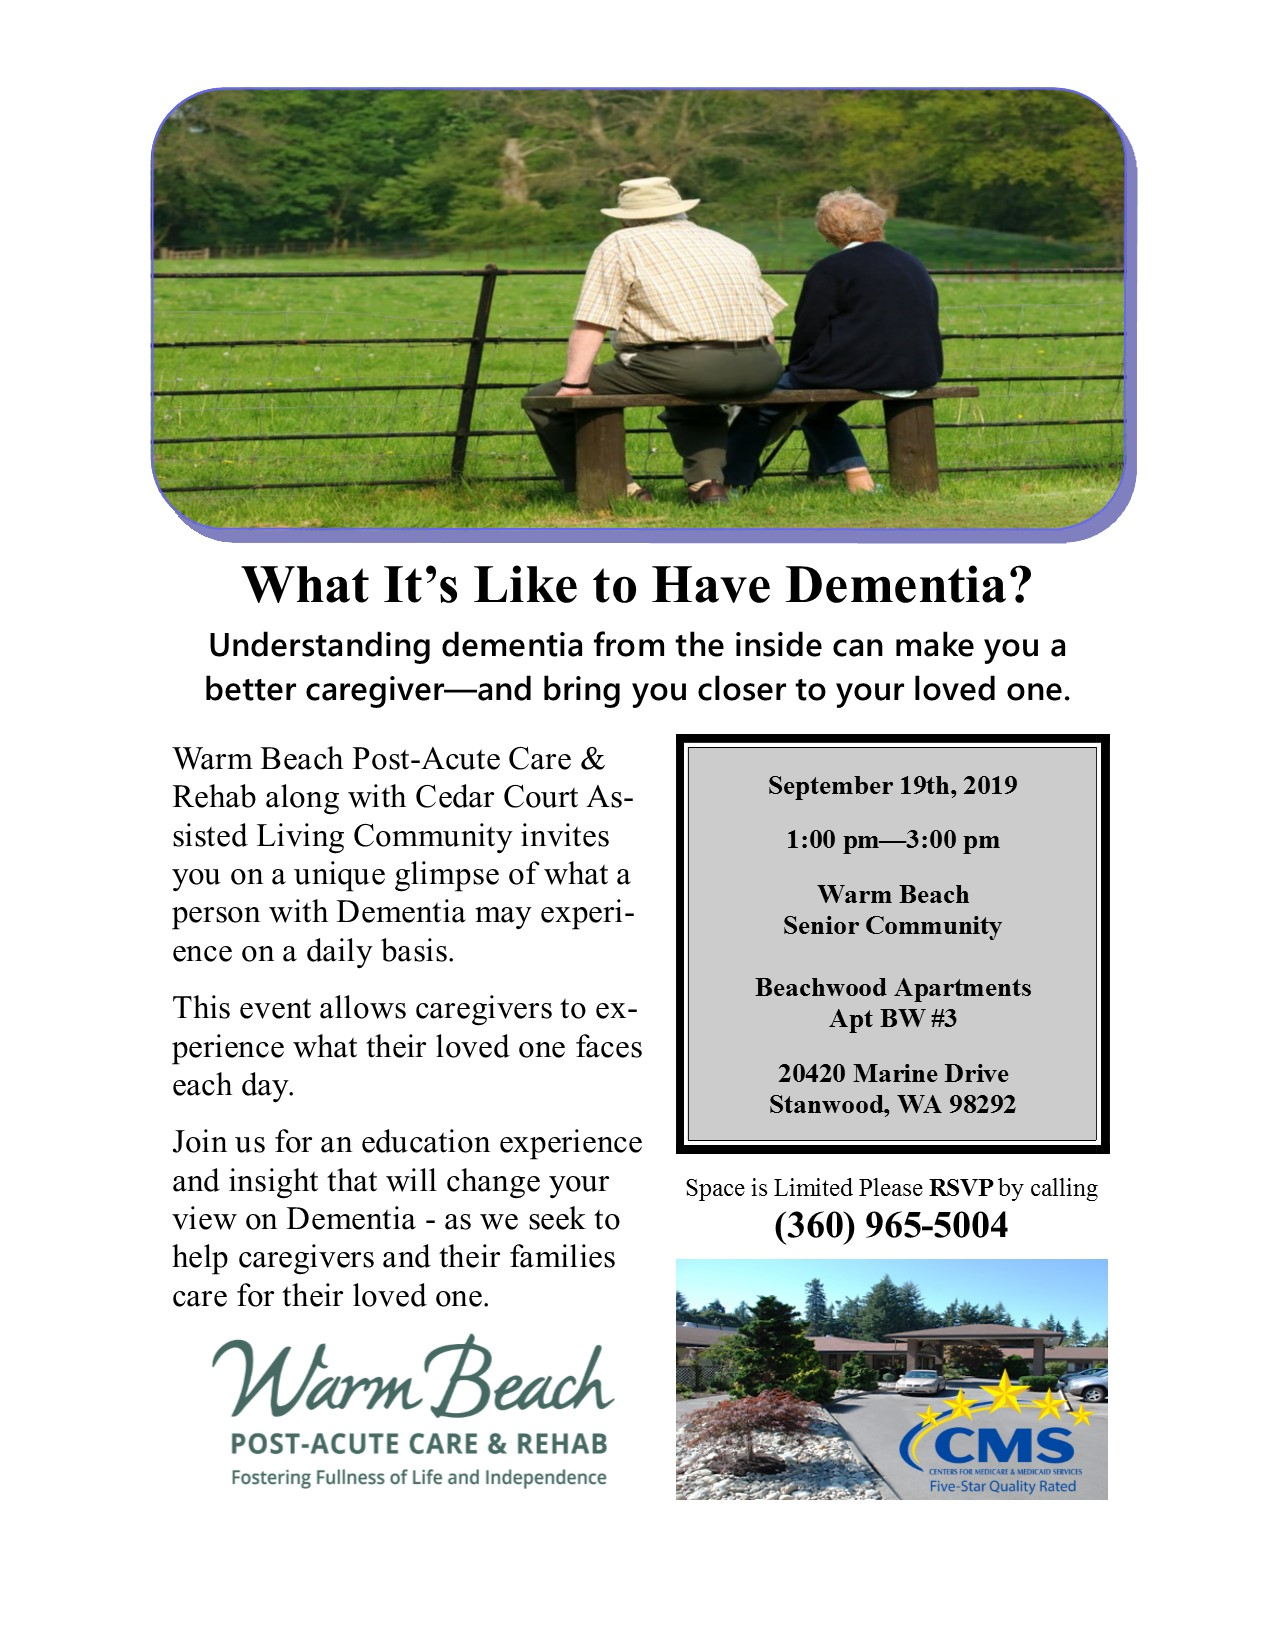 What is it Like to Have Dementia? @ Warm Beach Post Acute Care & Rehab